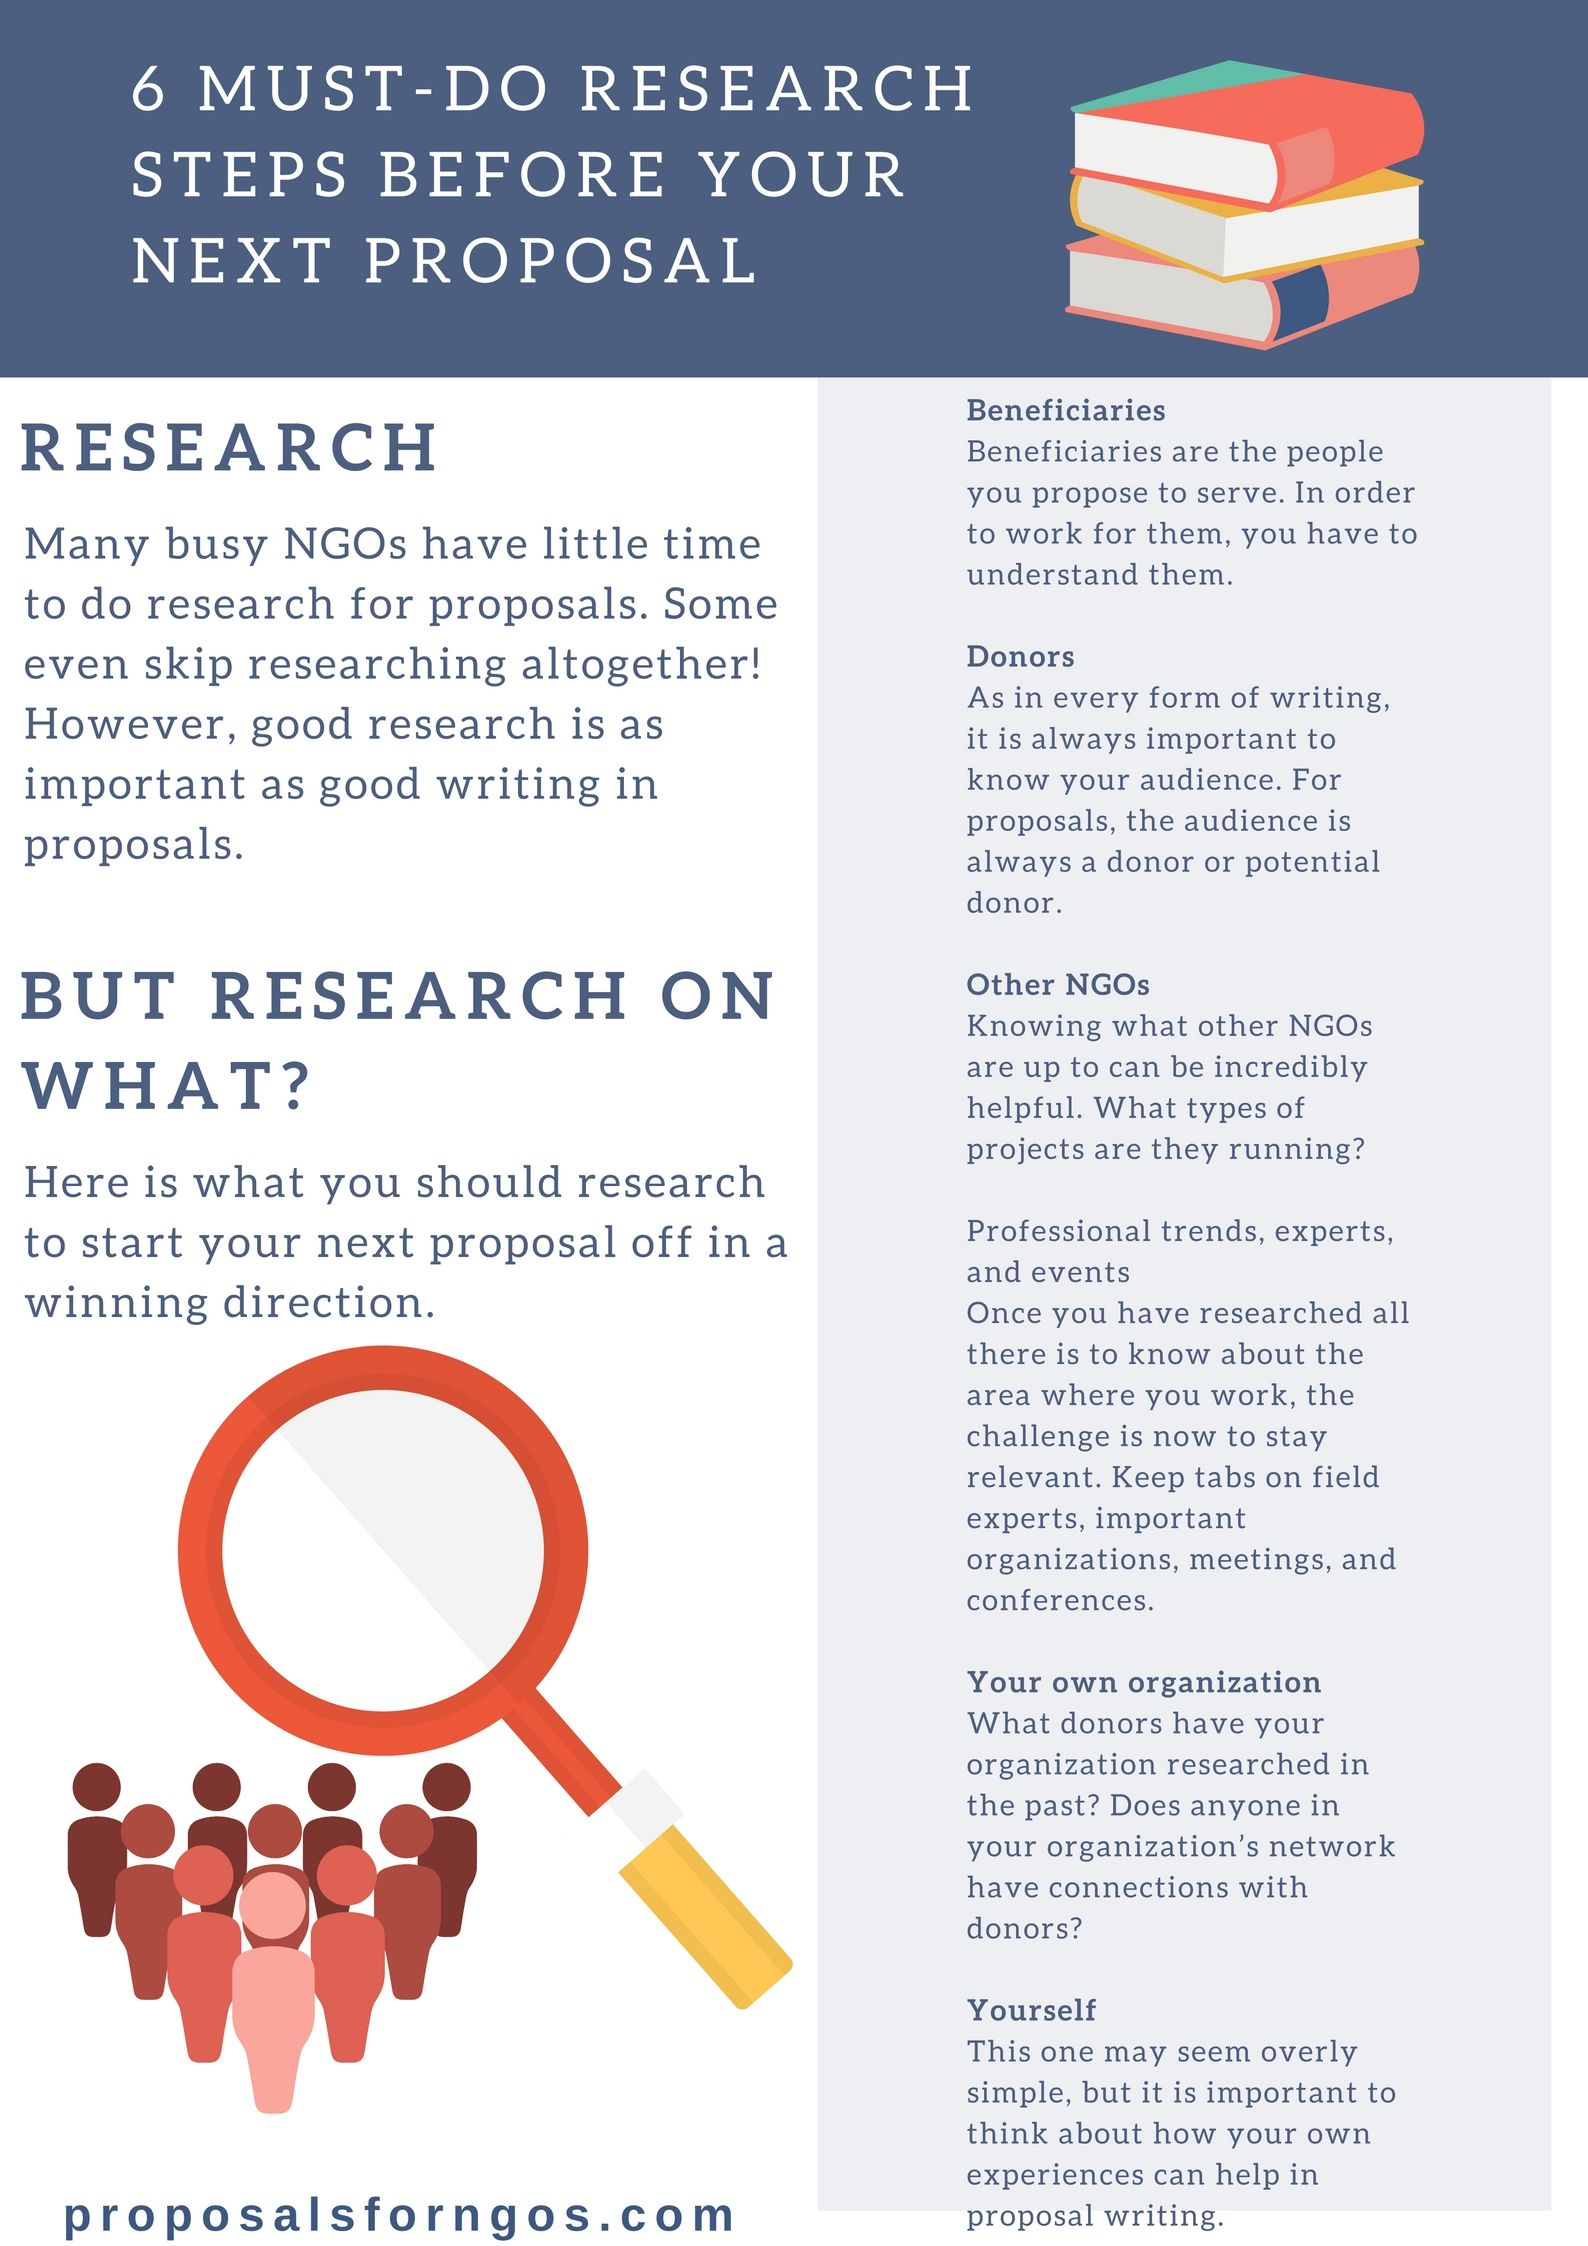 6 Must-Do Research Steps Before Your Next Proposal